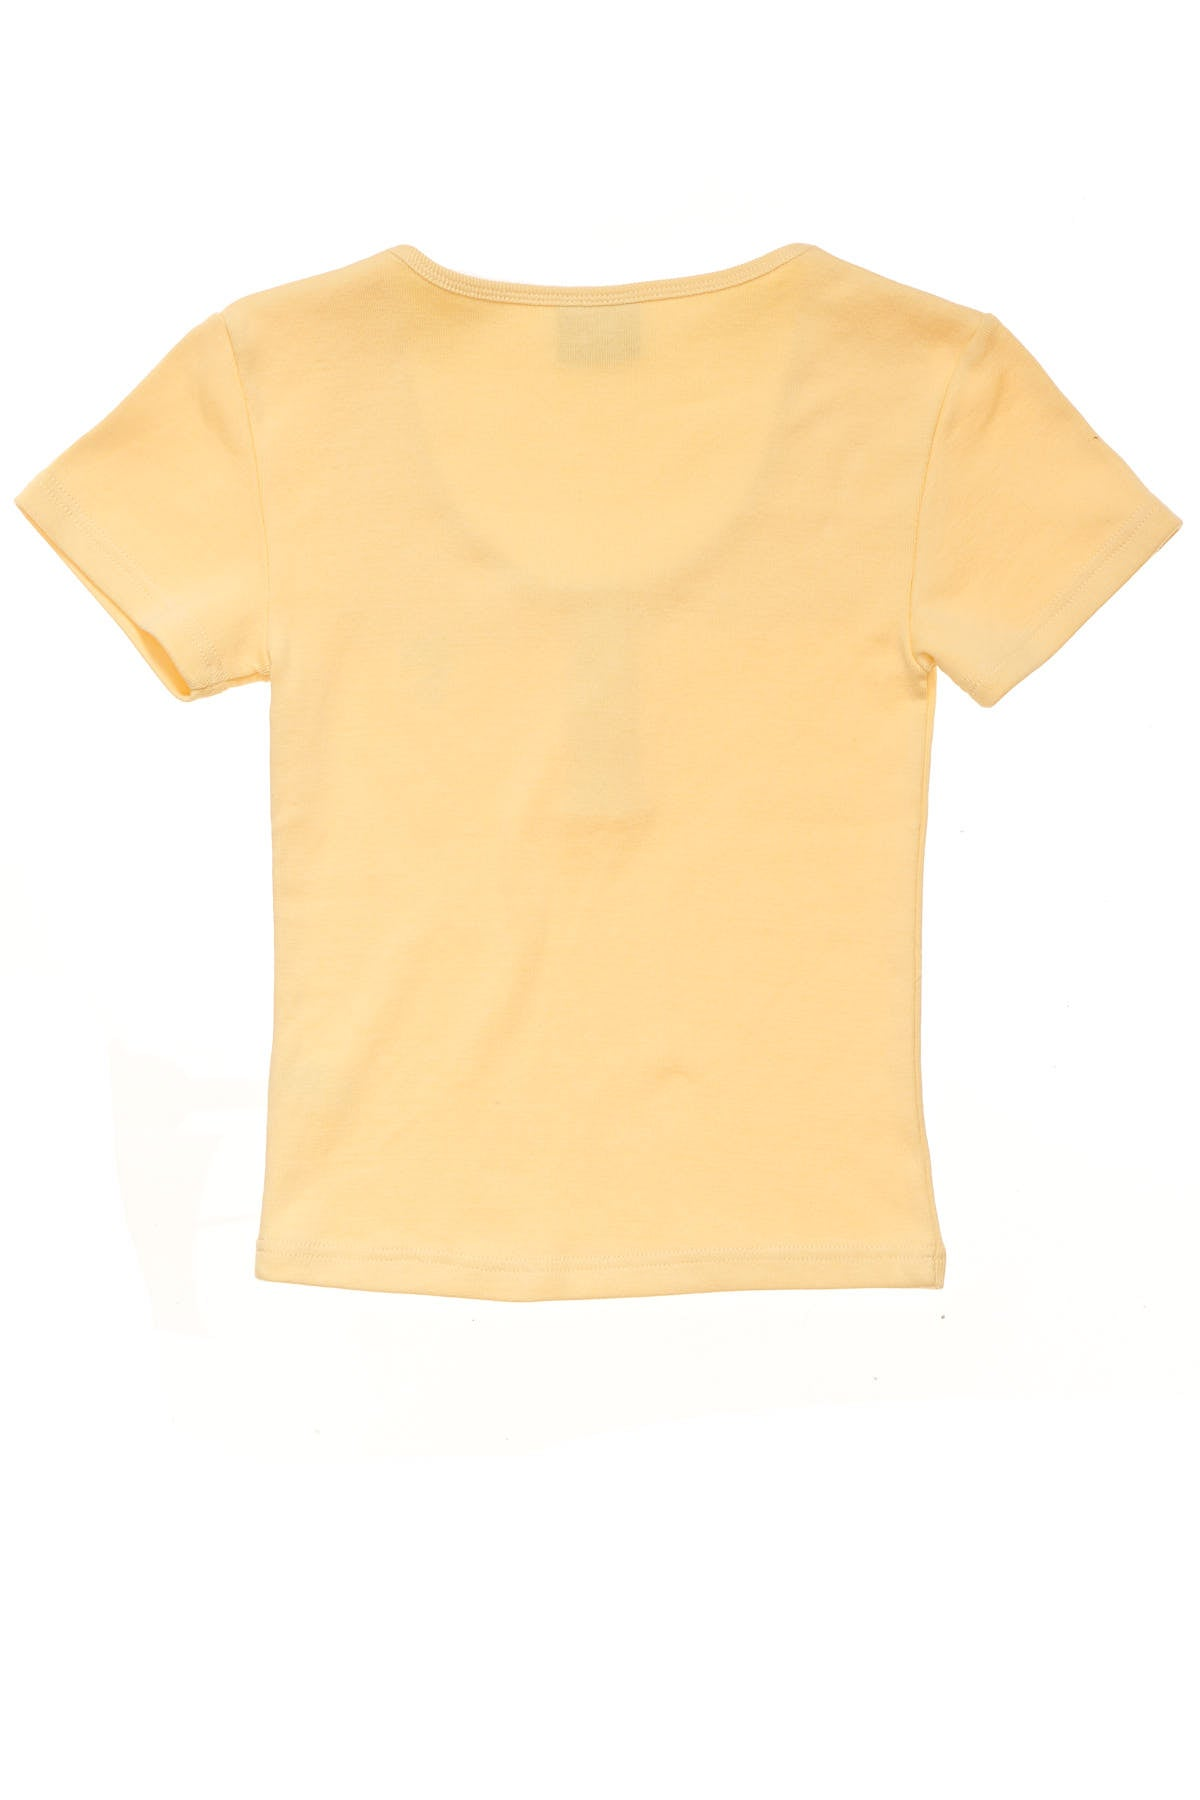 Berk Scoop Neck Tee